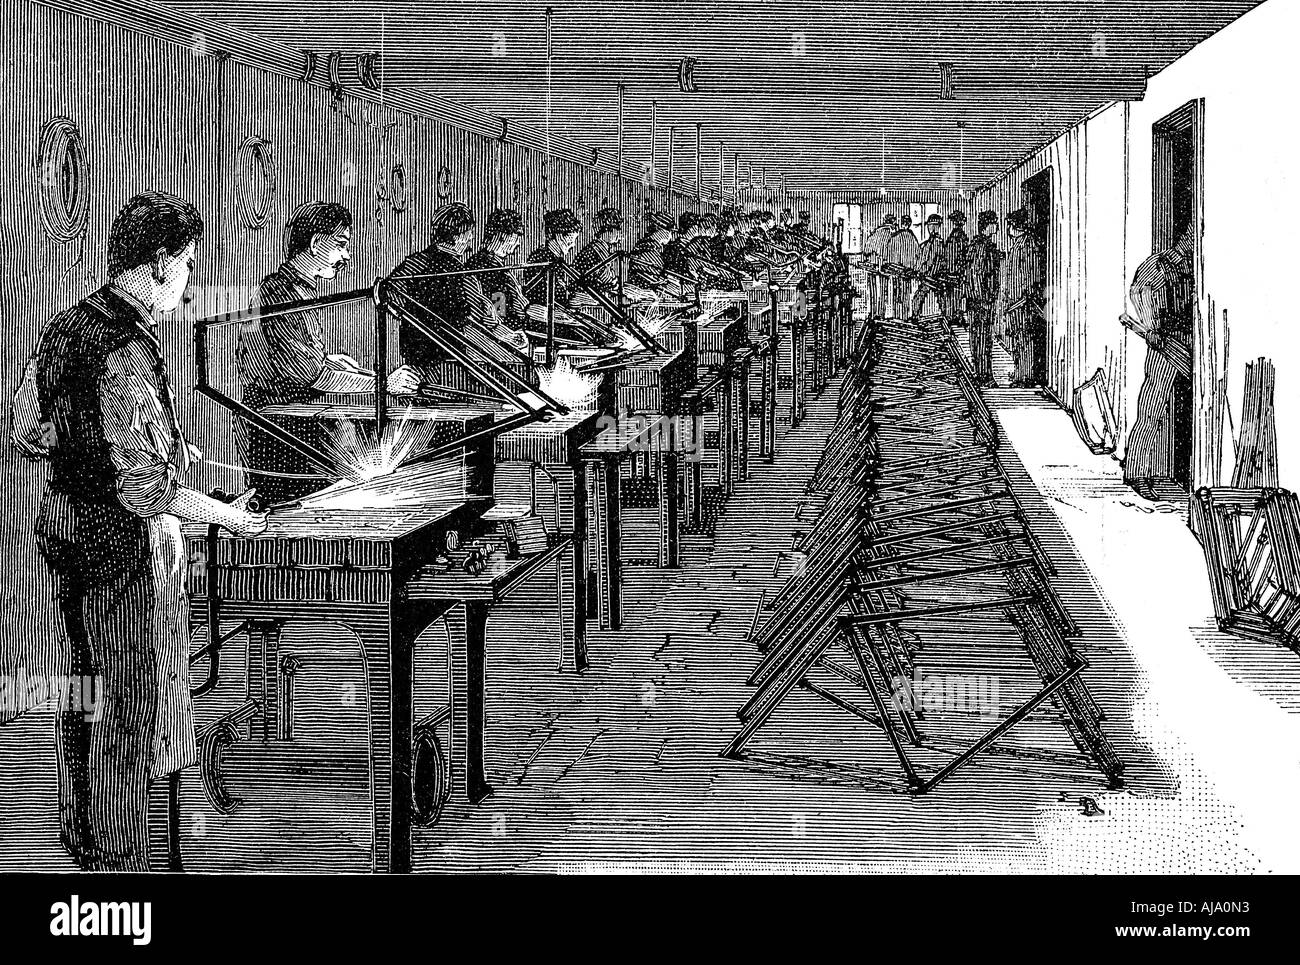 Welding bicycle frames in an American factory 1900  - Stock Image